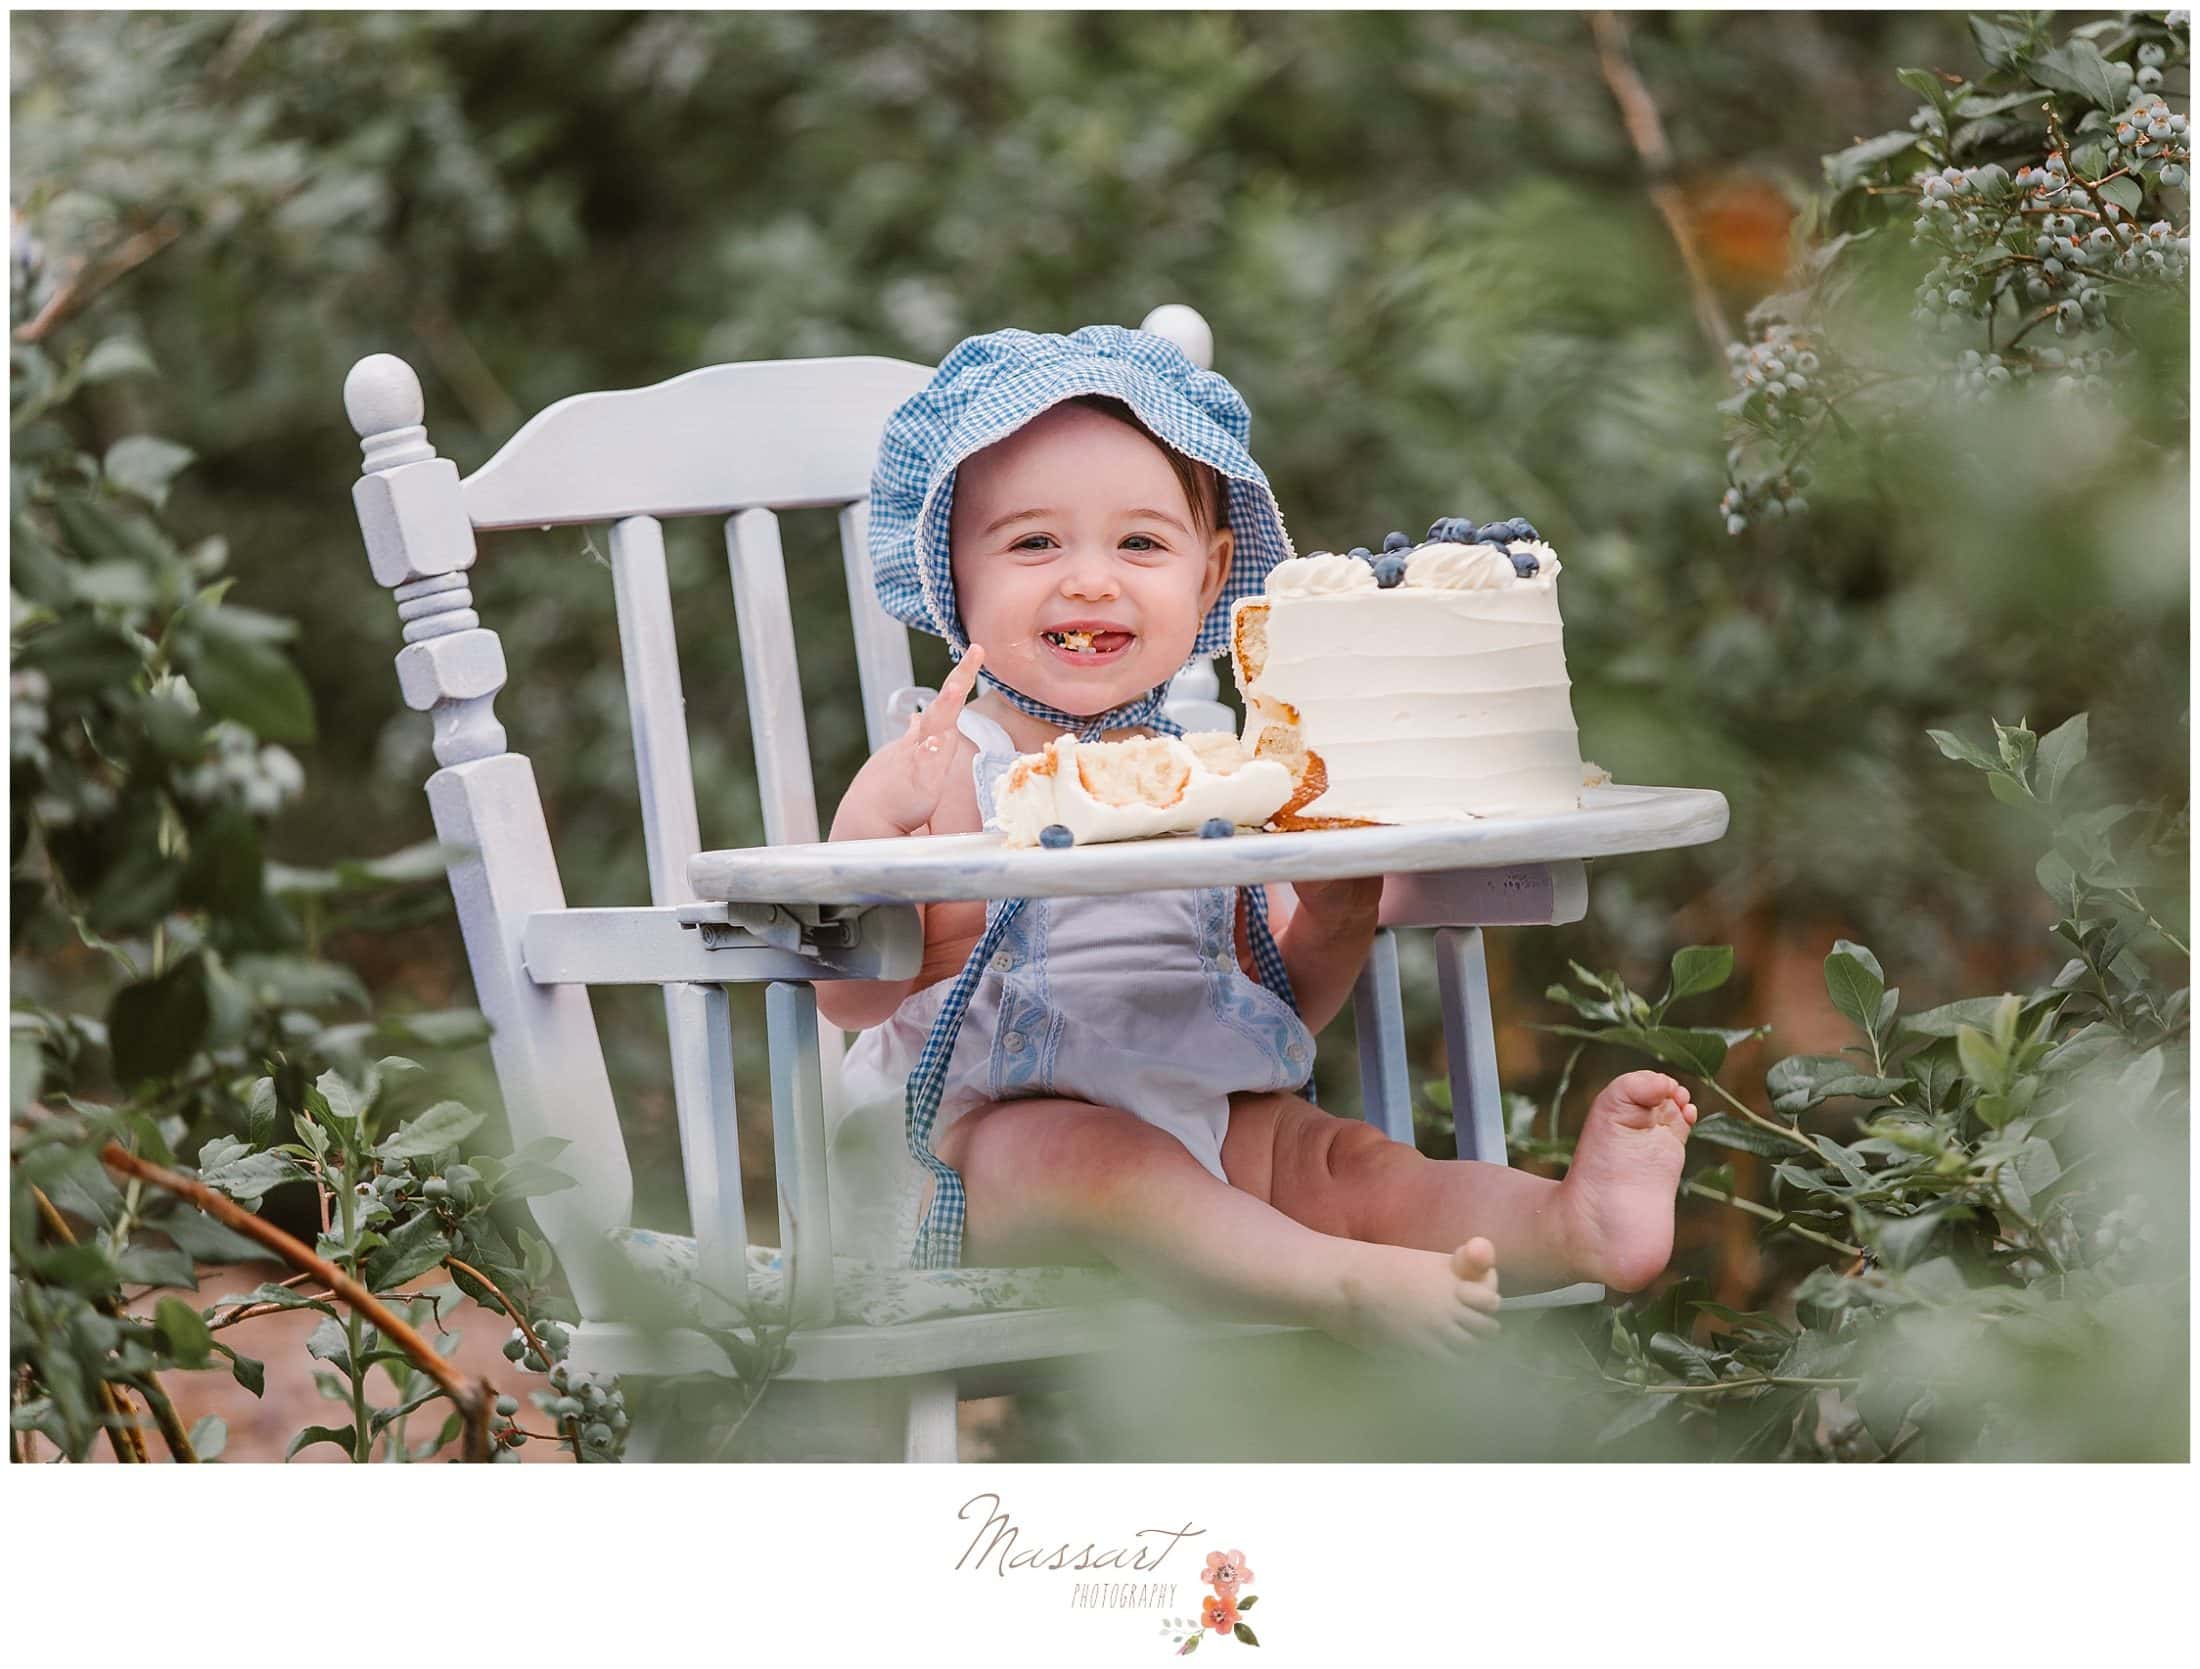 Baby girl sits in white high chair and eats her blueberry cake during her cake smash session photographed by Massart Photography Rhode Island